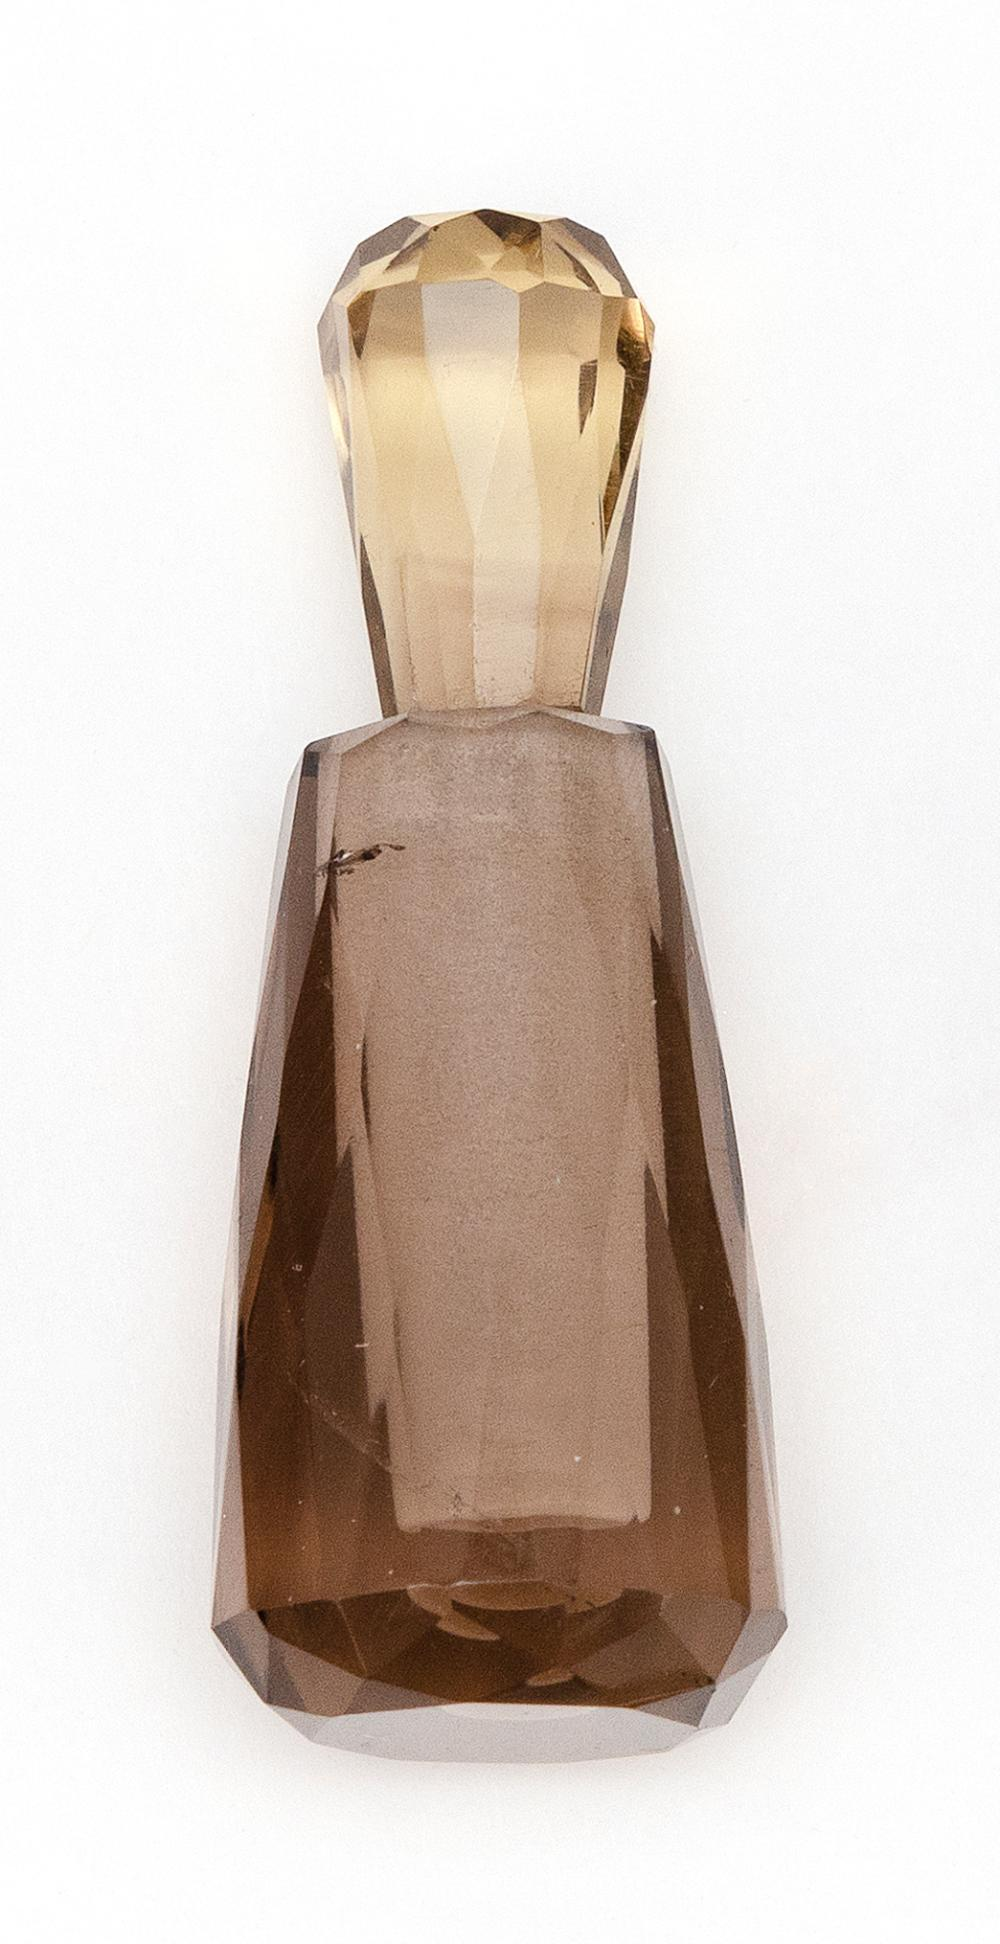 "CHINESE SMOKY QUARTZ MINIATURE PERFUME BOTTLE In a faceted tapered design with a teardrop stopper. Height 2""."